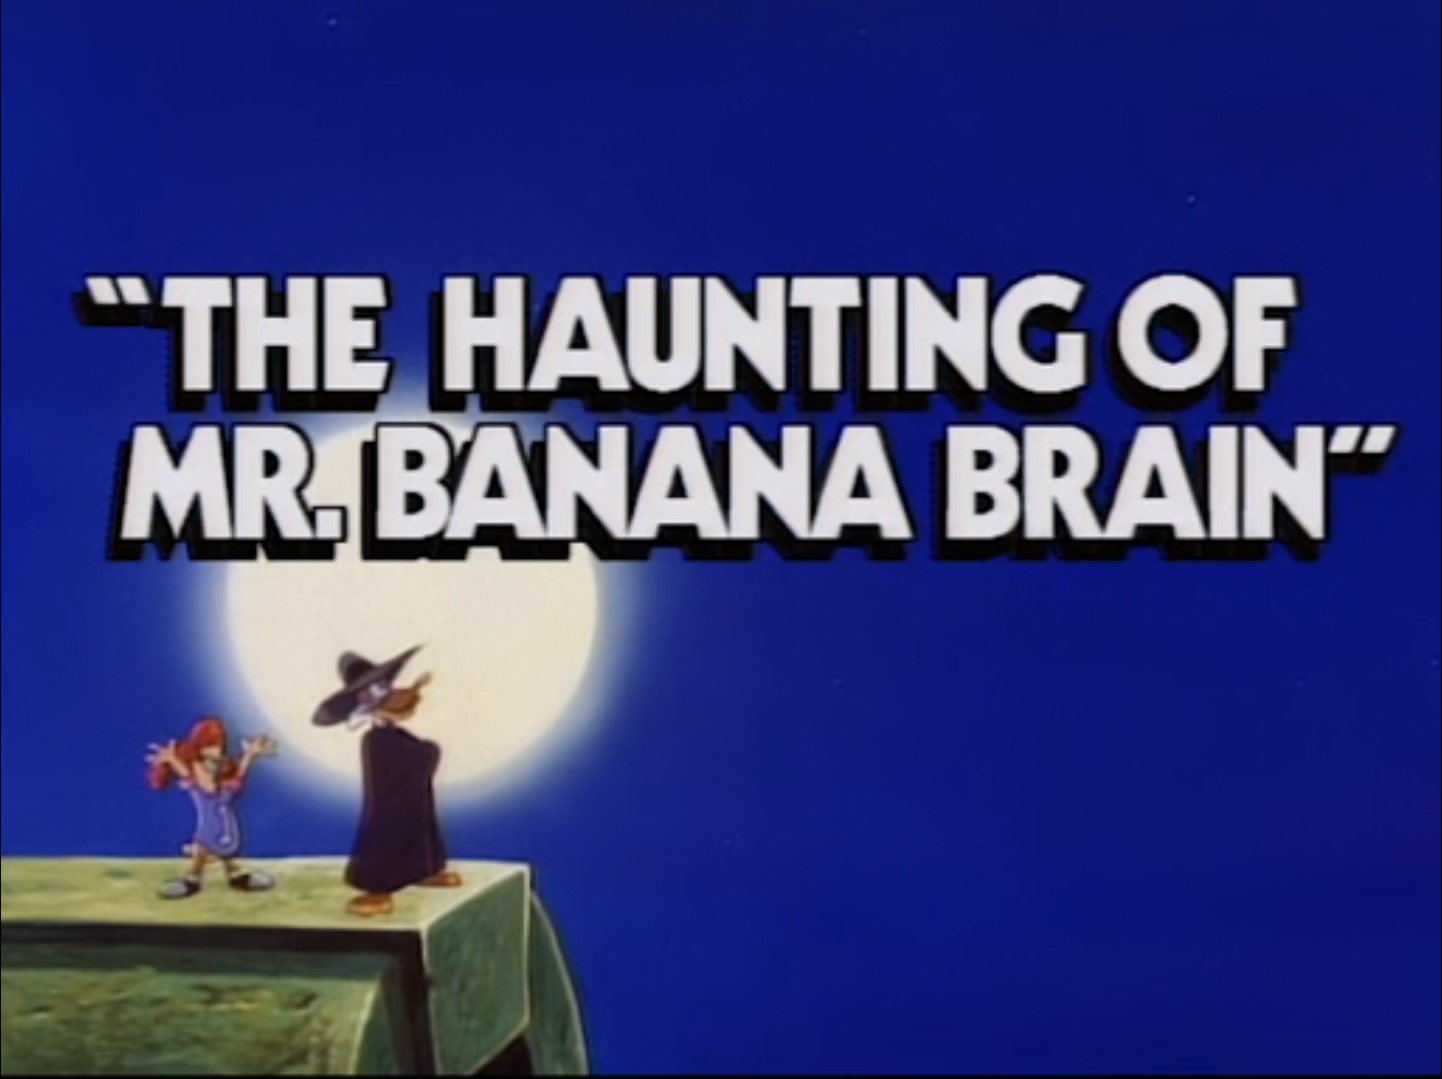 The Haunting of Mr. Banana Brain